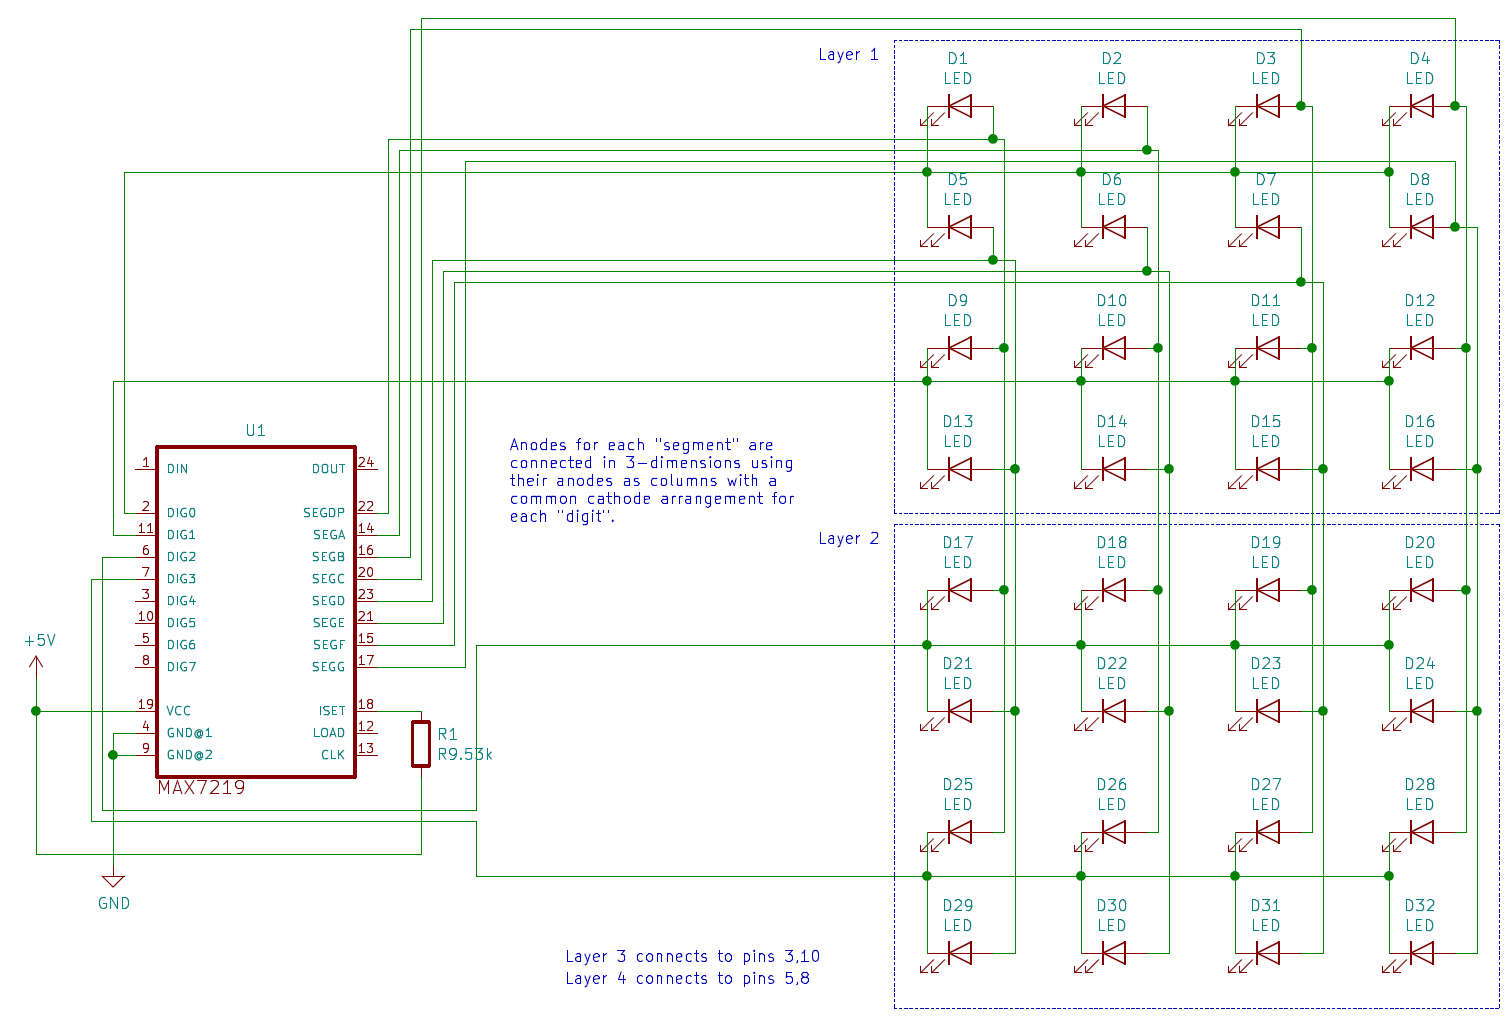 Led Cube Schematic - Wiring Diagram H8